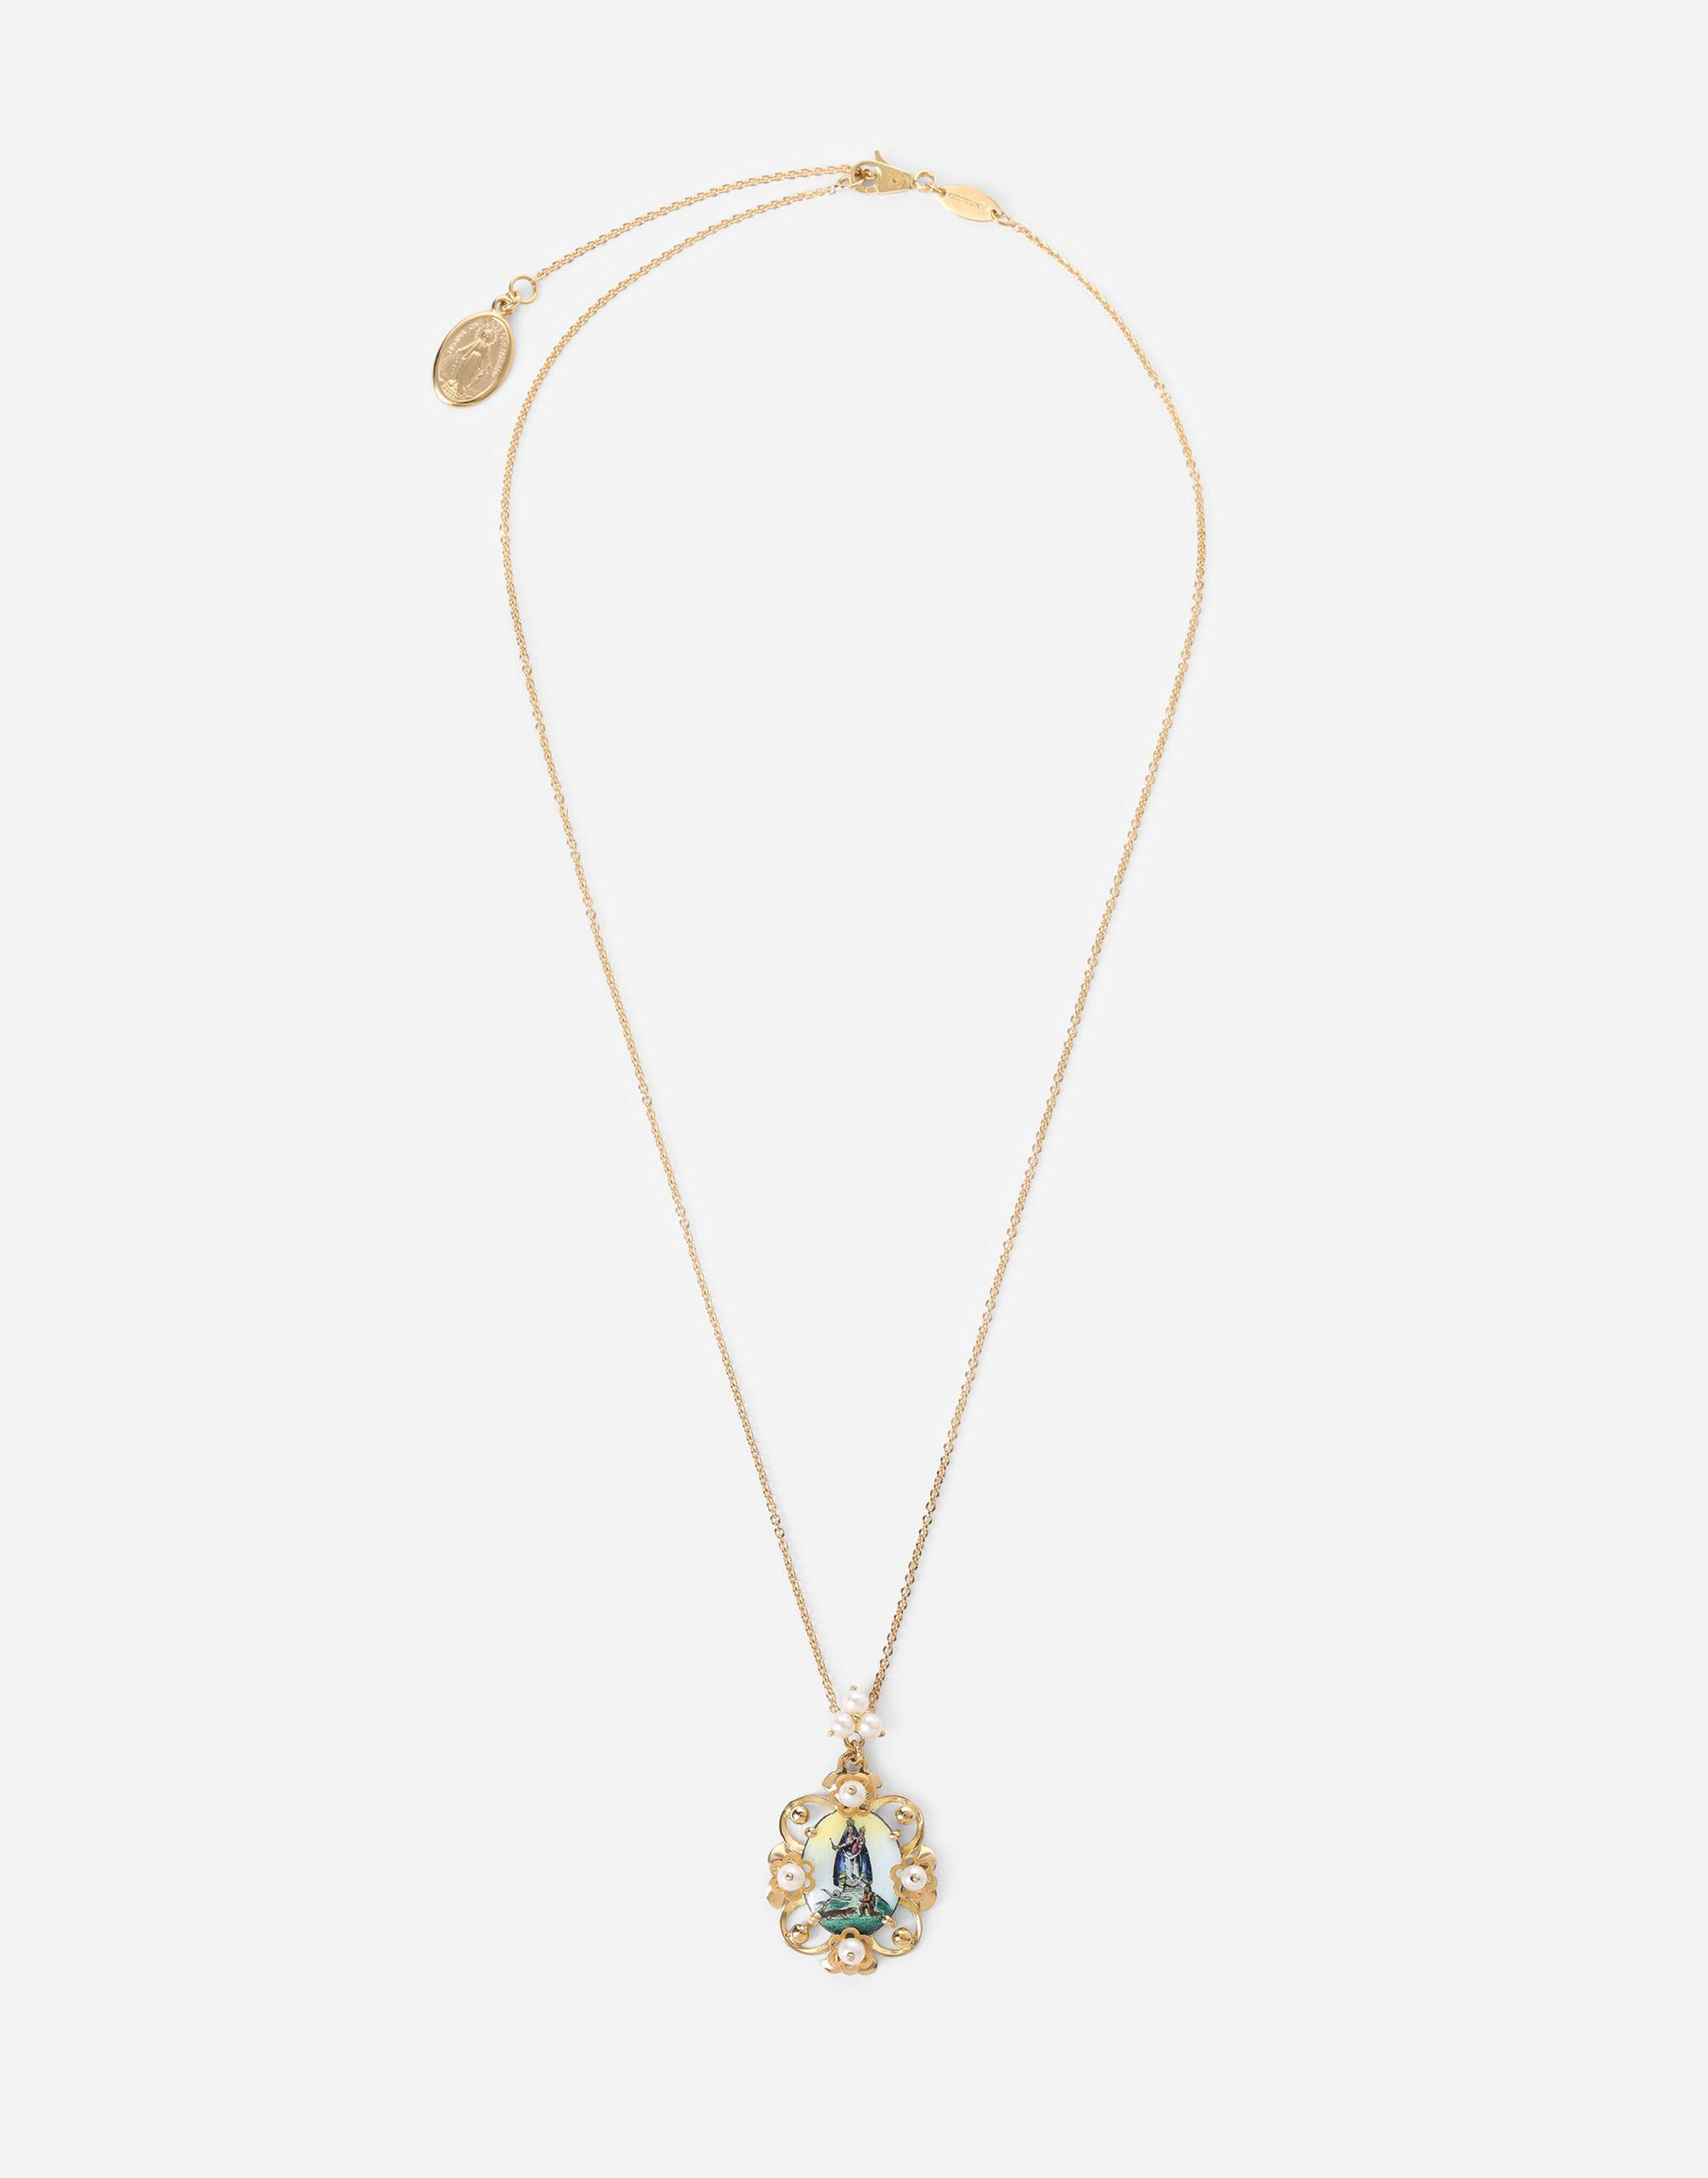 D.D. pendant in yellow 18kt gold and antique cheramic miniature